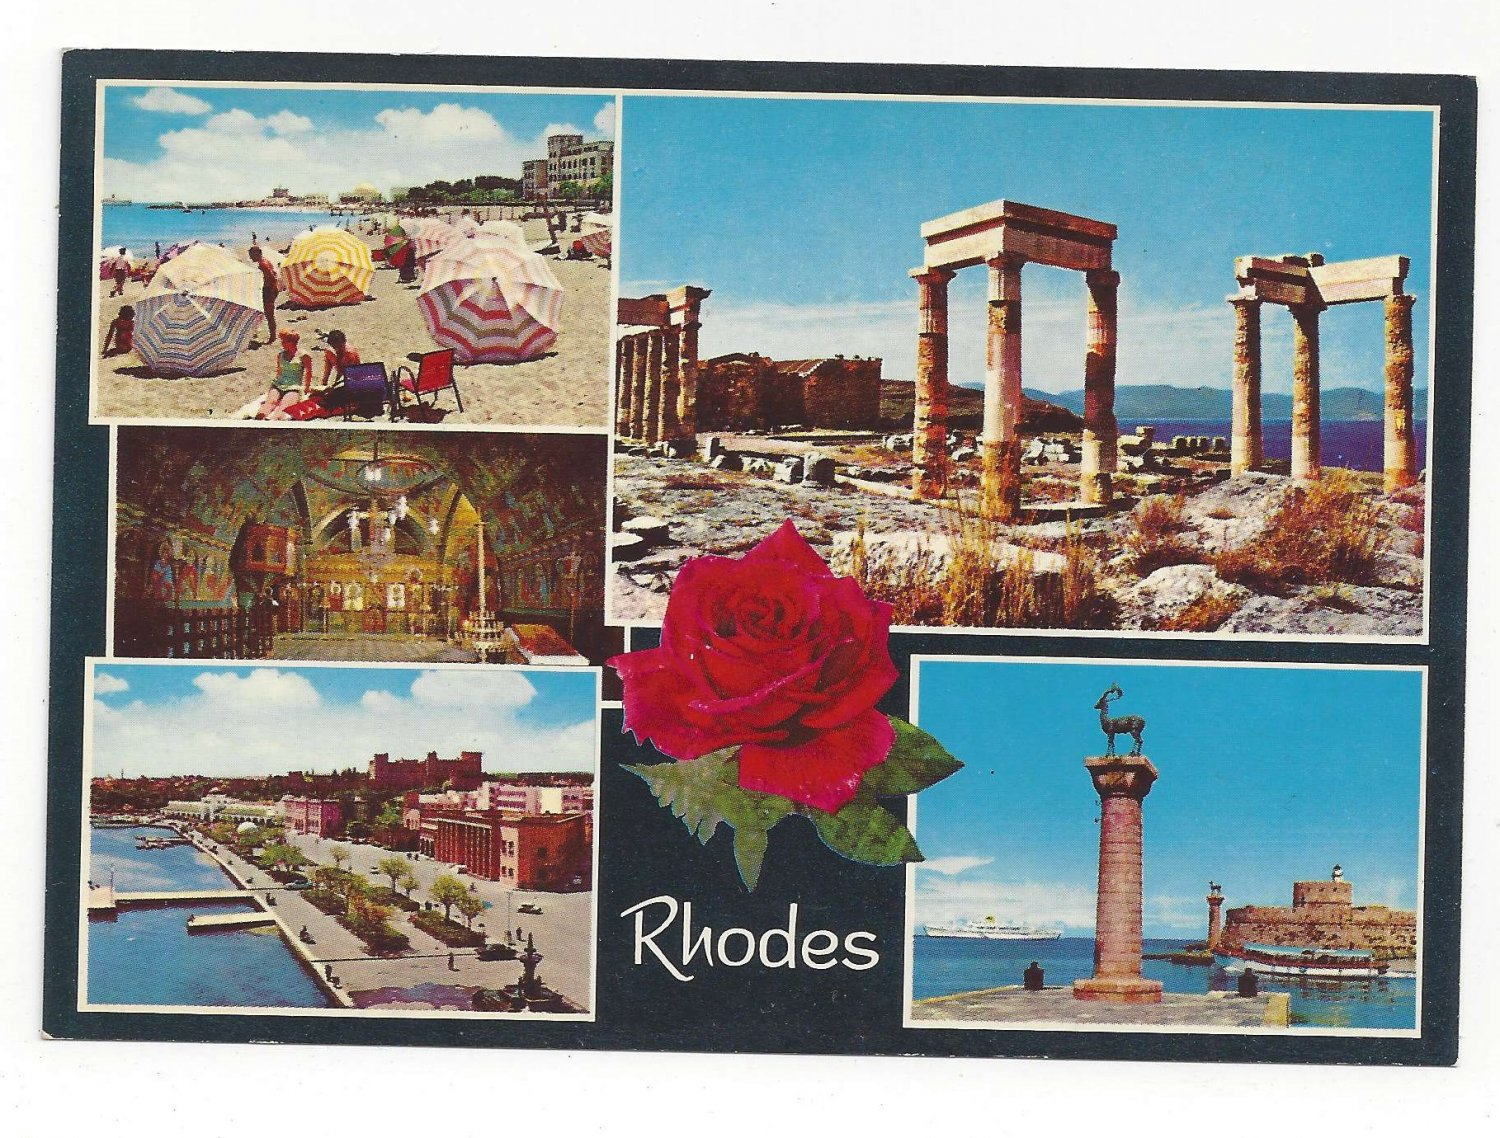 Greece Rhodes Multiview Beach Ruins Port Harbor View Vtg Postcard 4X6